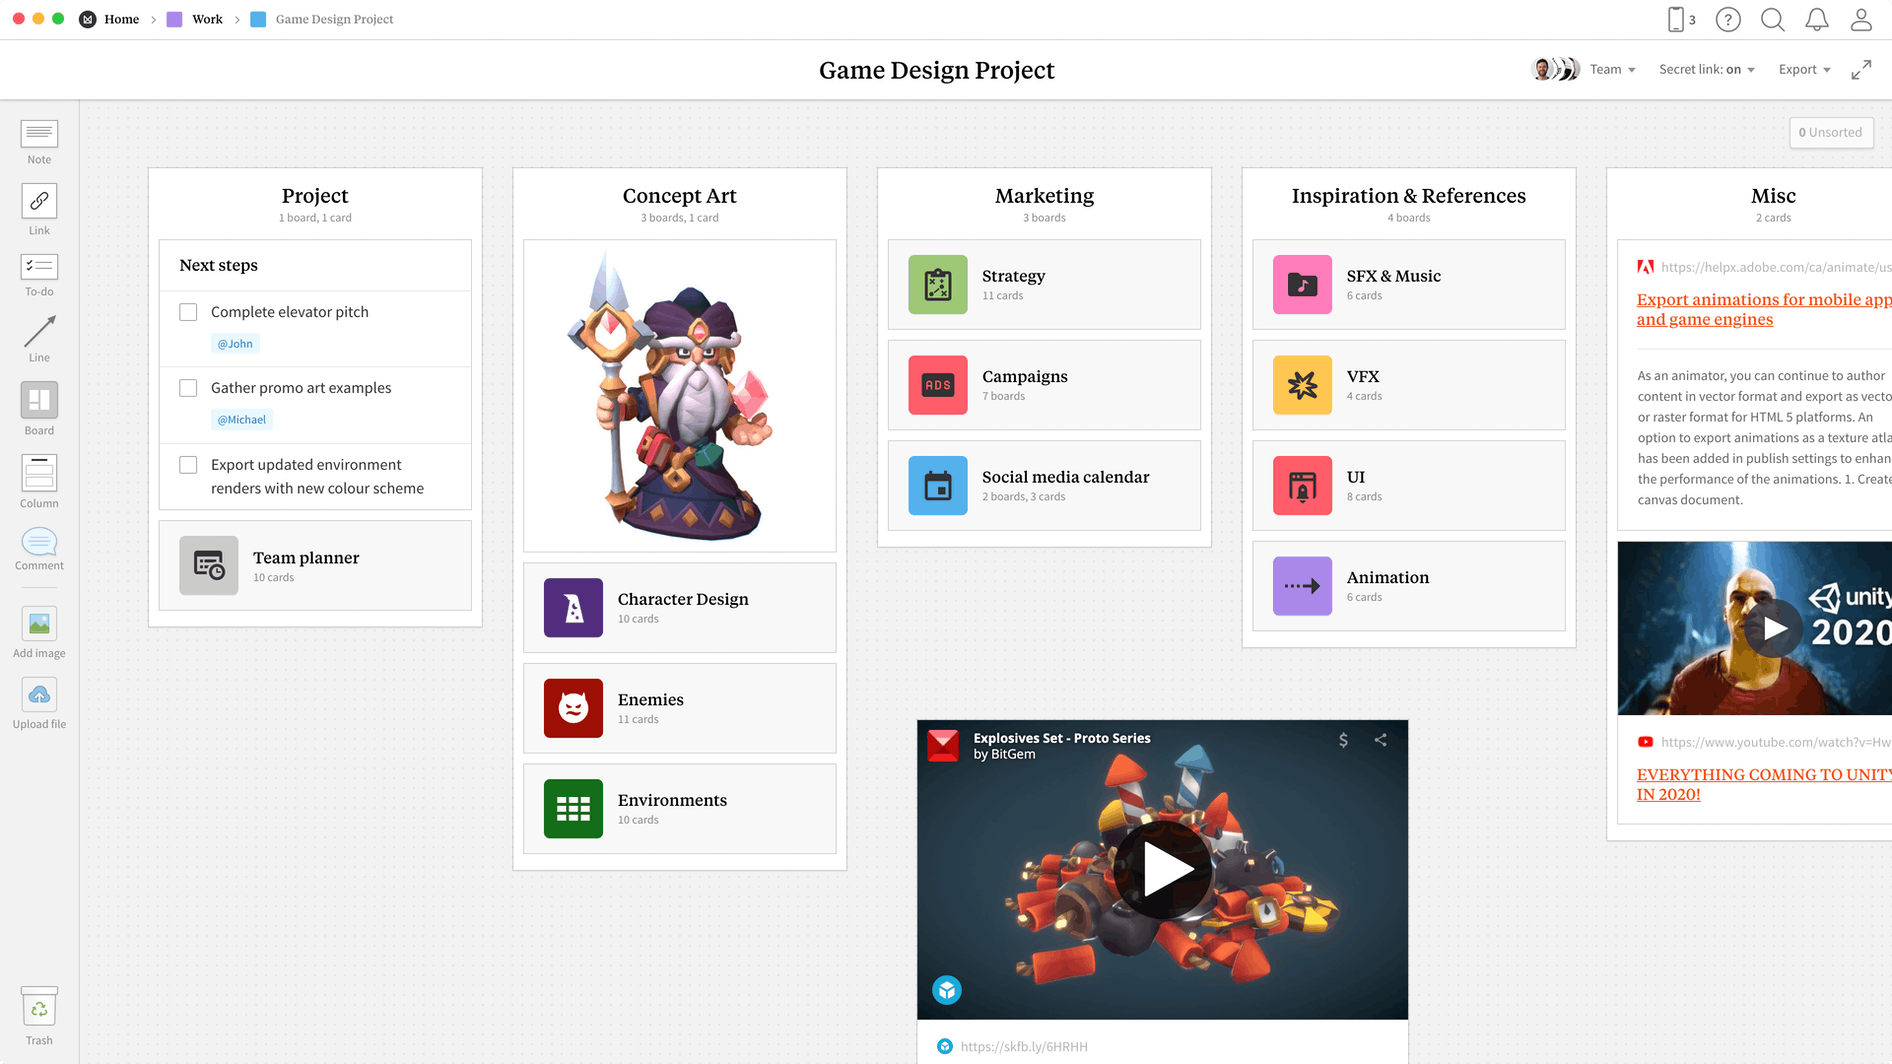 Game Design Document Template, within the Milanote app